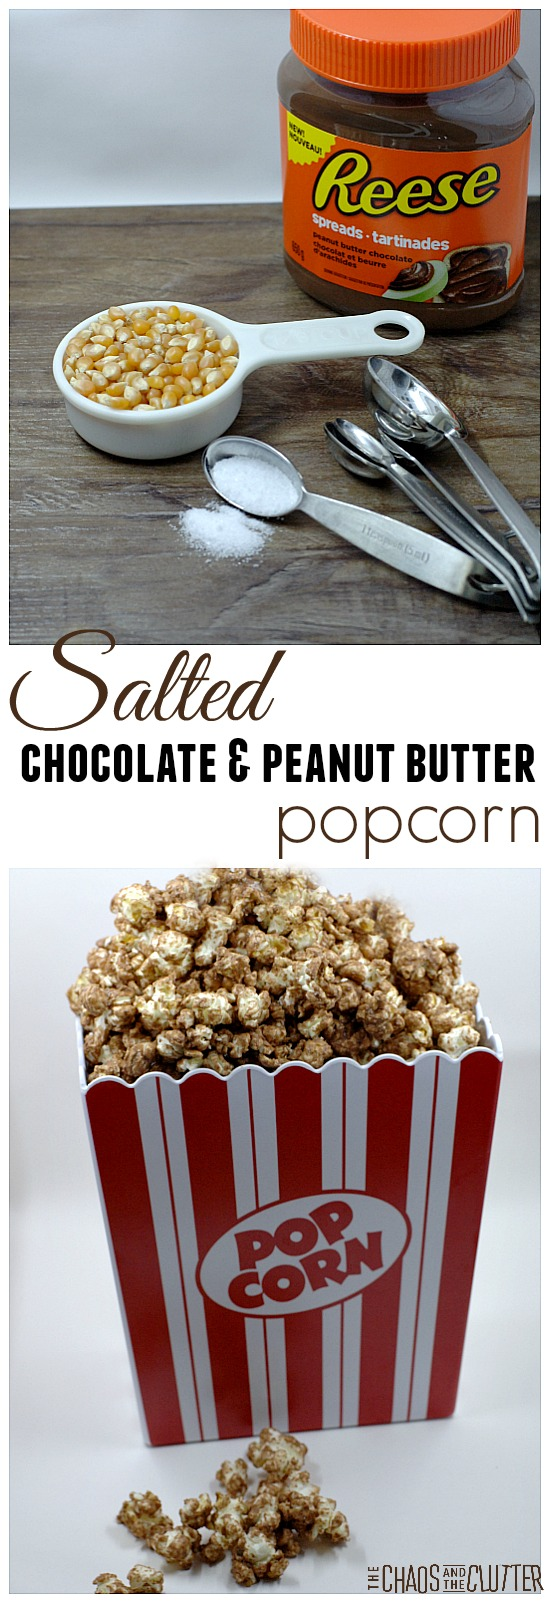 This salted chocolate and peanut butter popcorn is A-Mazing and only has 3 ingredients! (plus it's gluten free)